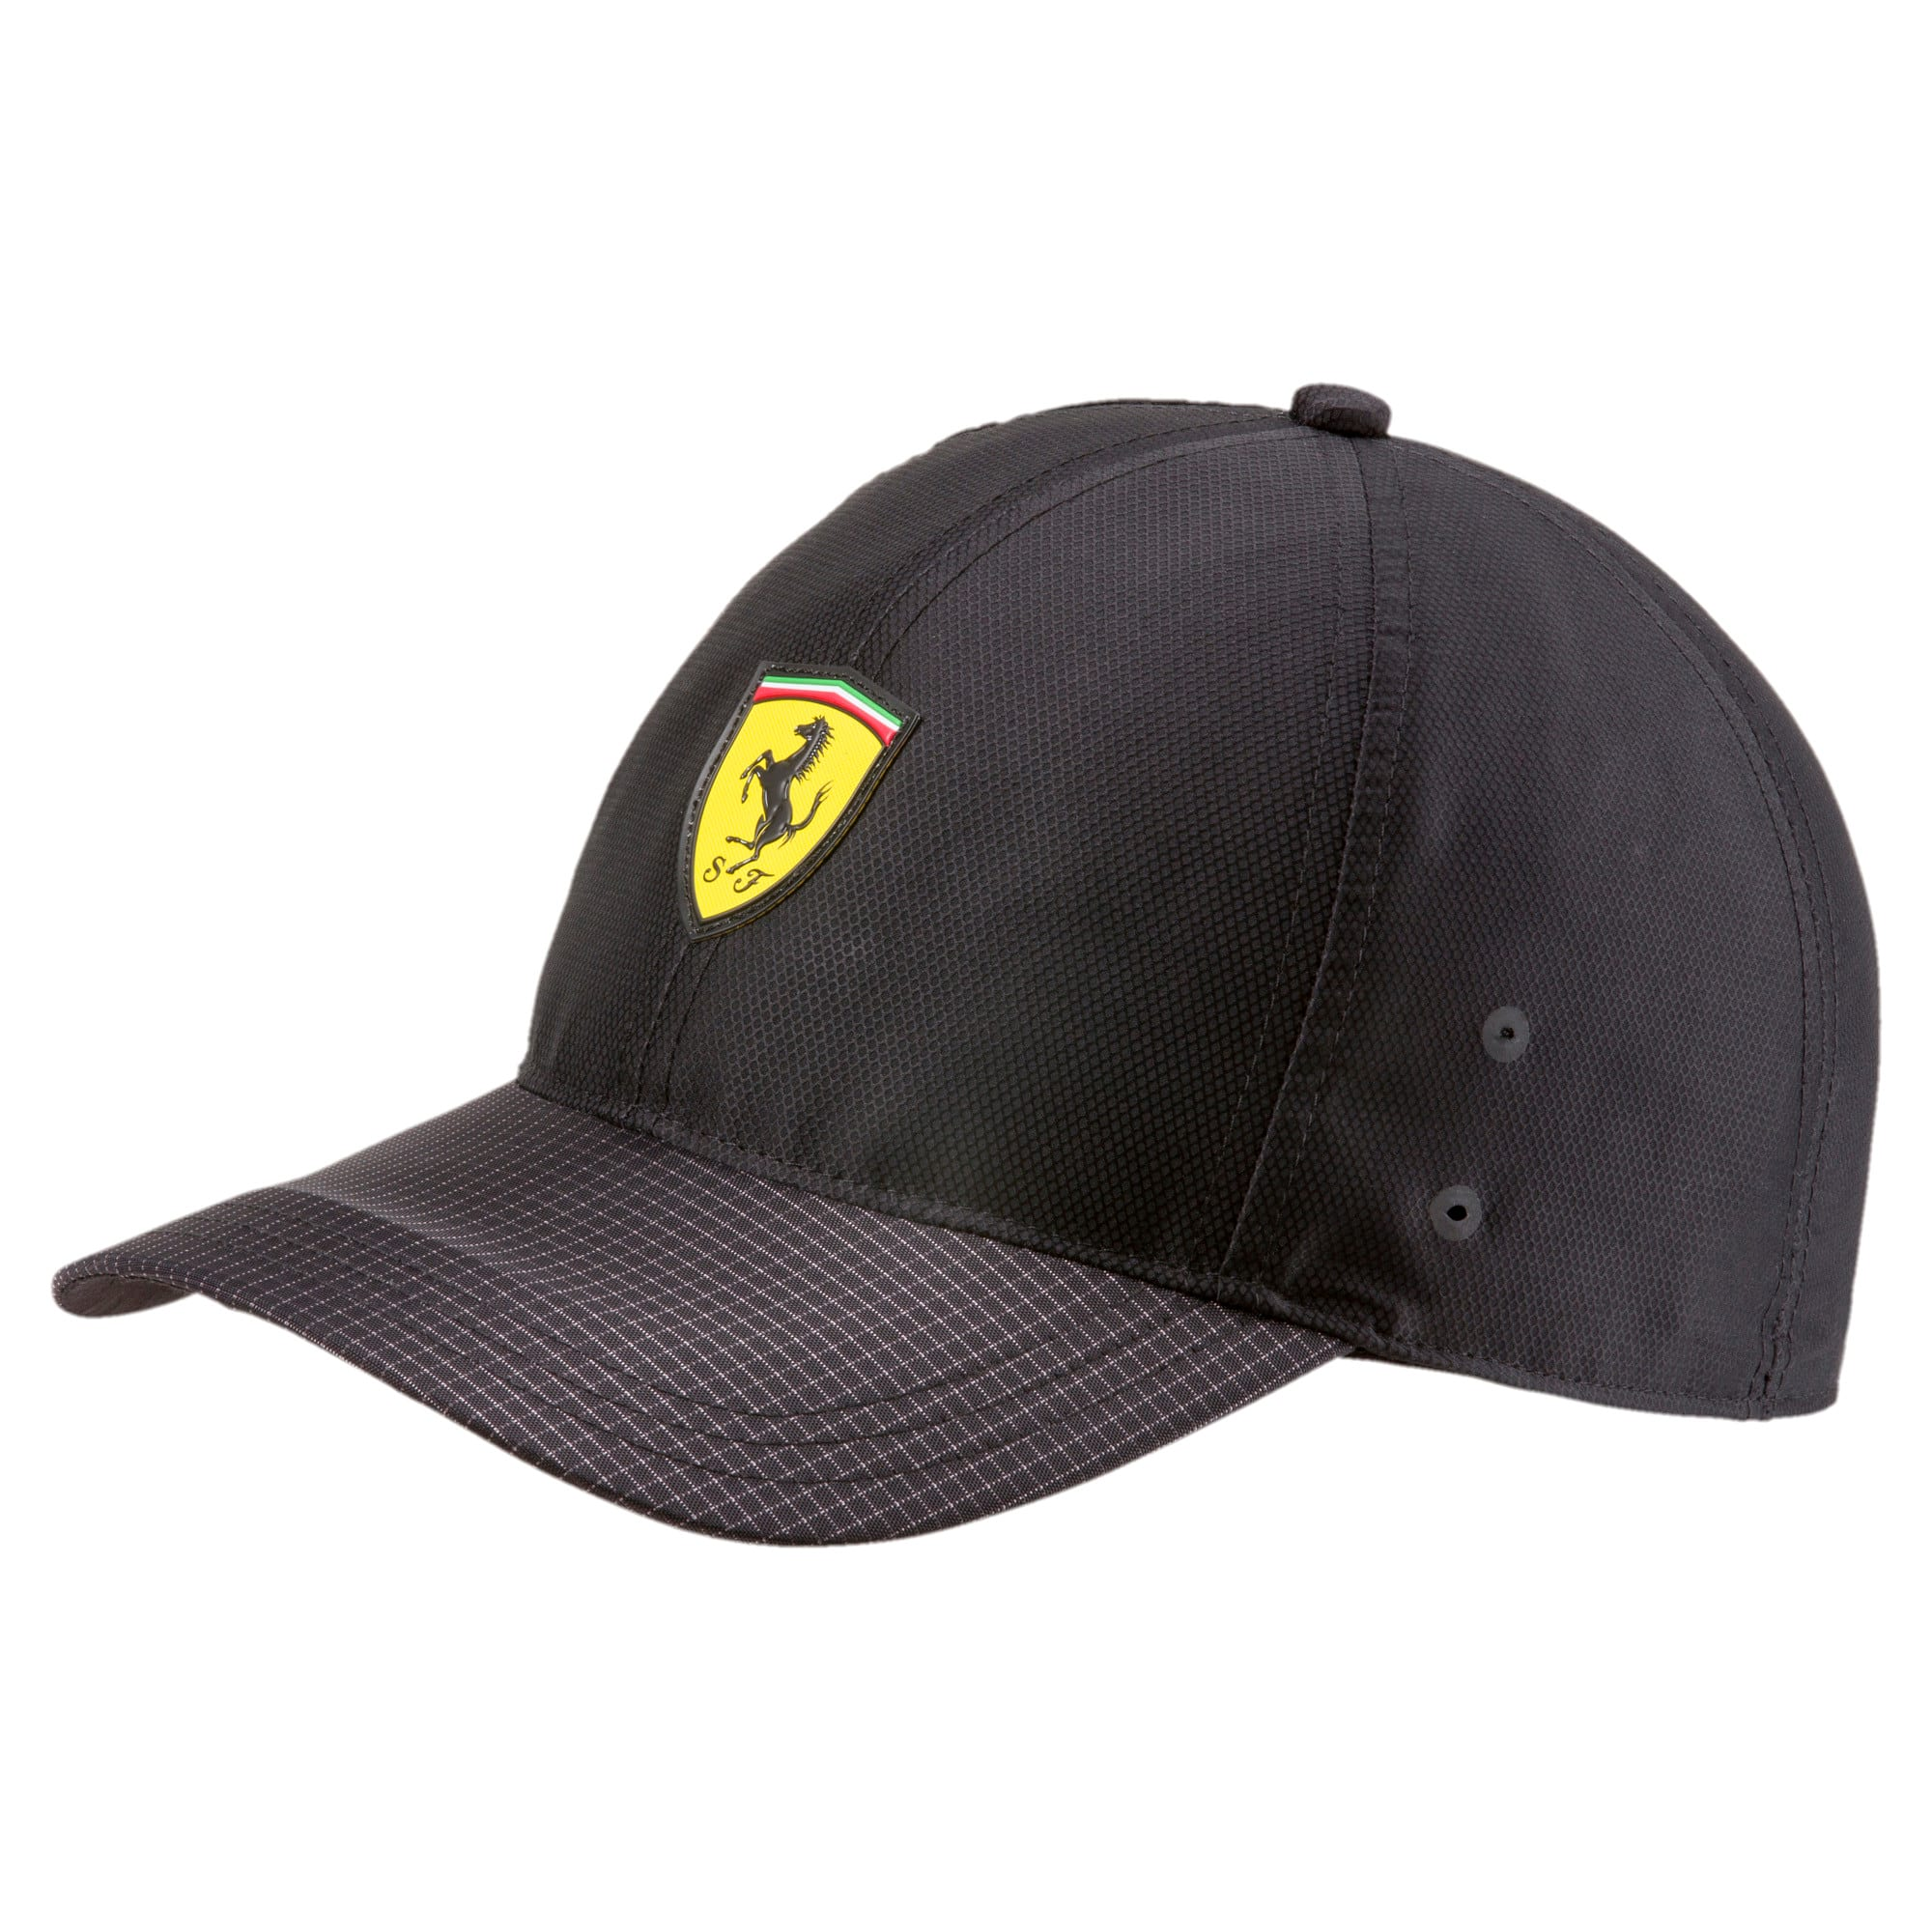 Thumbnail 1 of Ferrari Fanwear Night Baseball Hat, Puma Black, medium